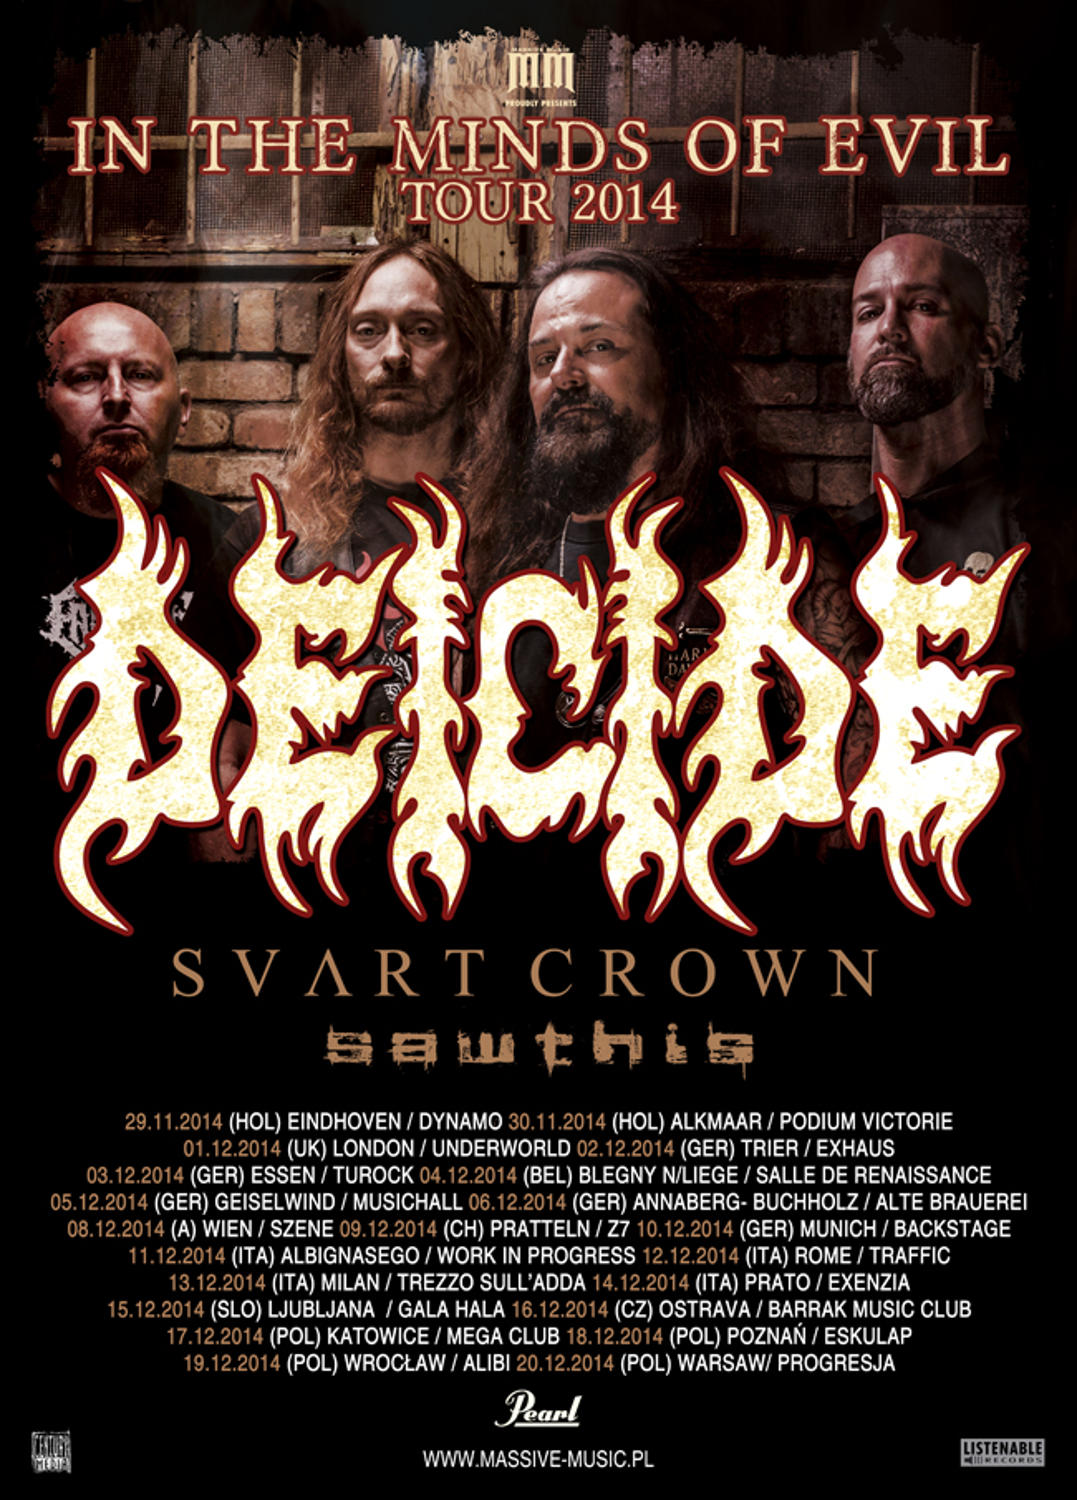 Deicide poster 2014 new online with dates